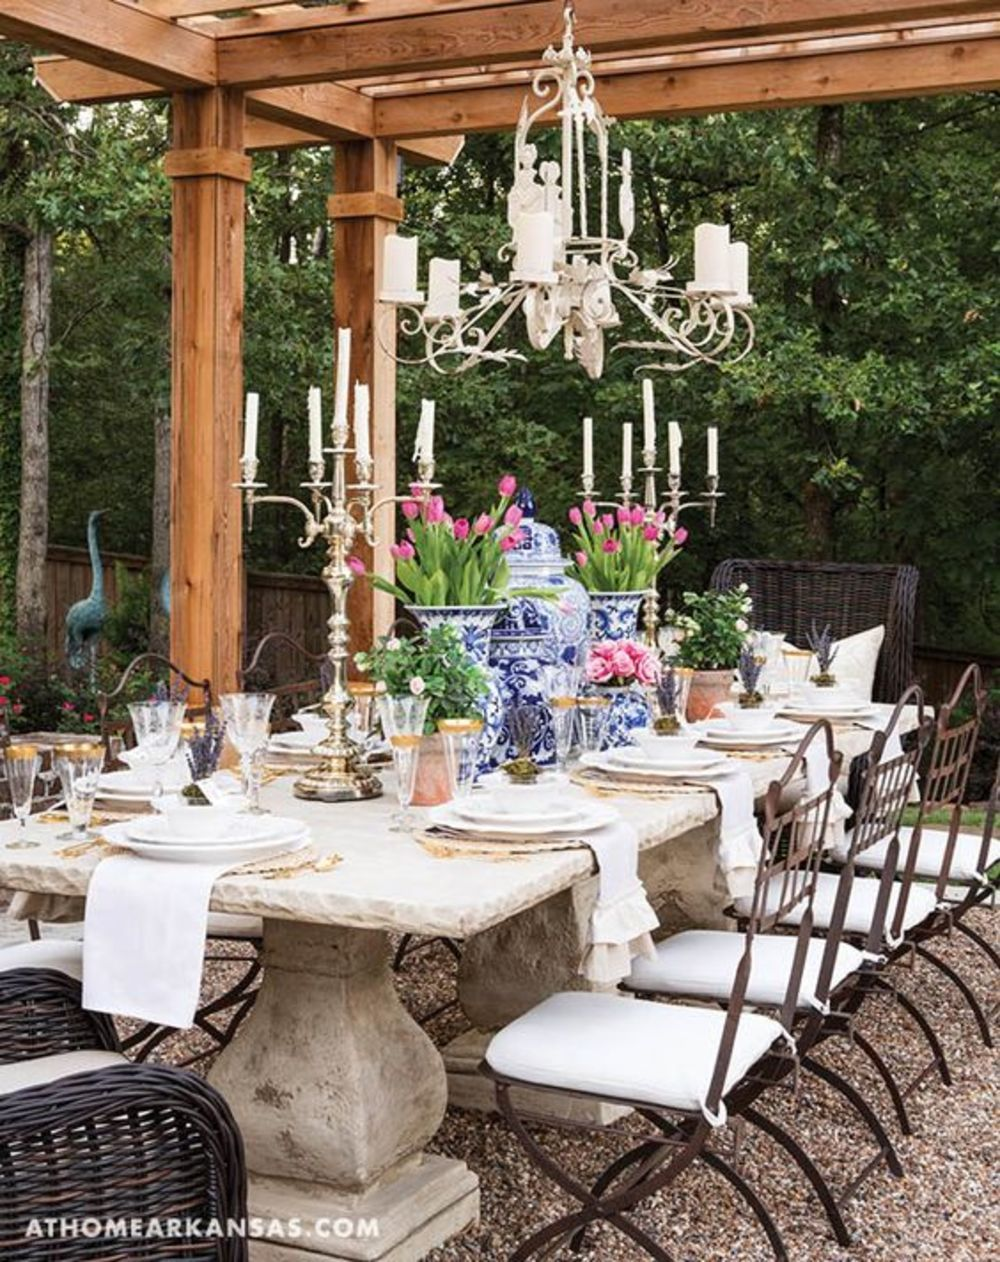 Outdoor Dining Table Idea The Decor Looks Vintage And Sophisticated French Country Dining Room Table Outdoor Dining French Country Dining Room